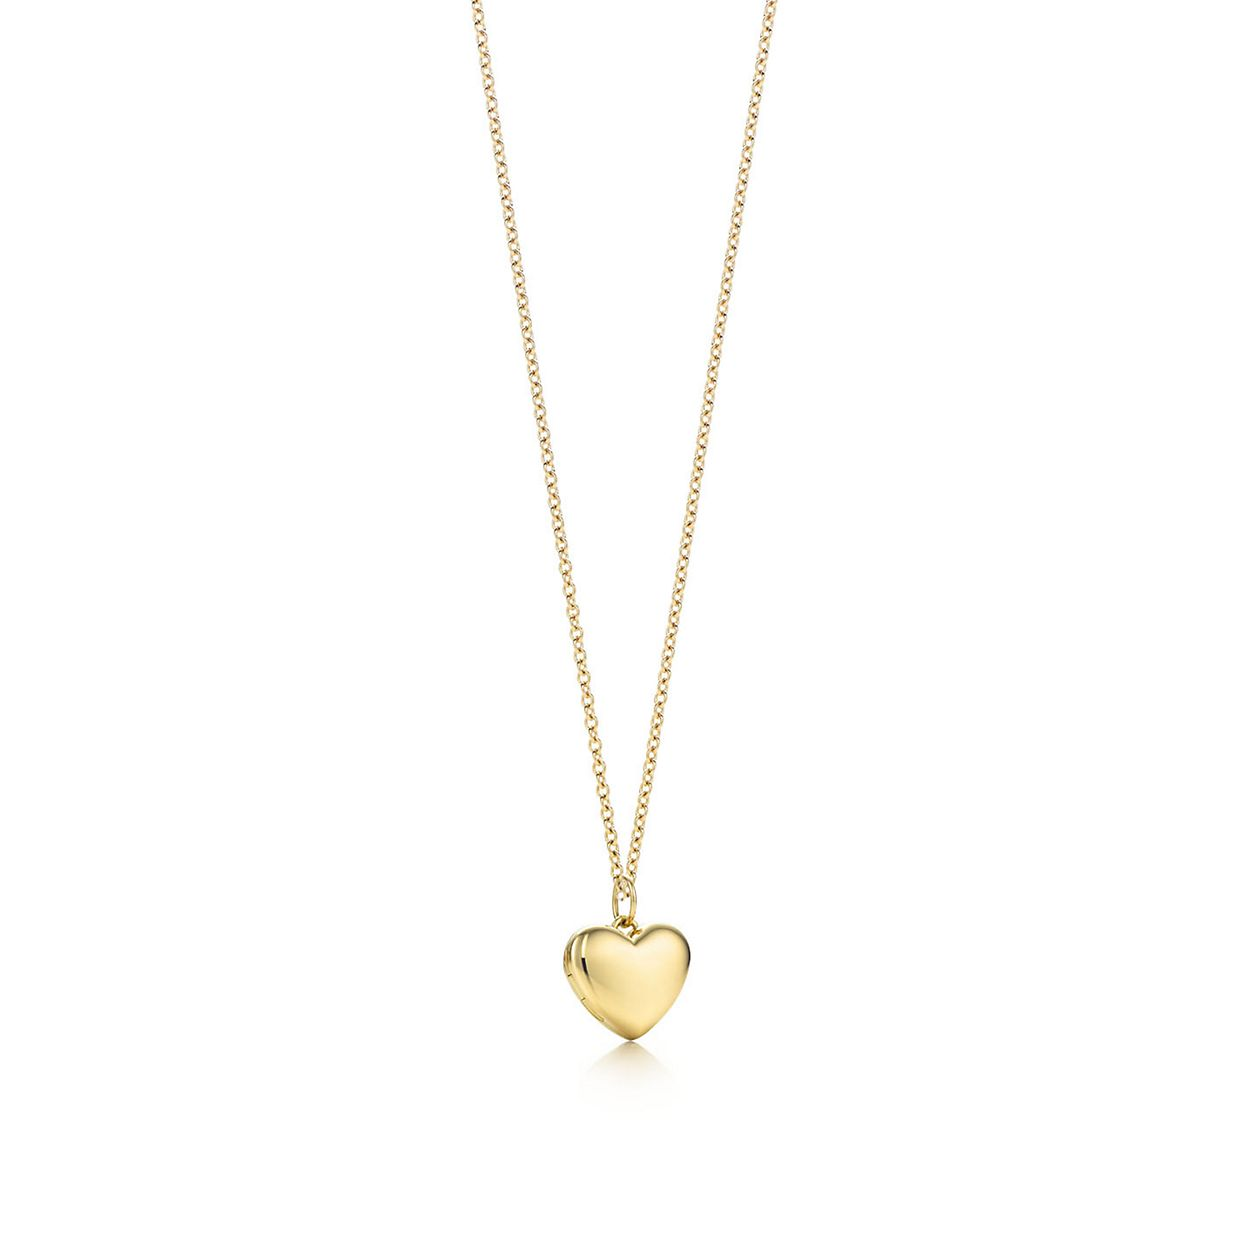 Heart locket pendant in 18k gold, small. | Tiffany & Co.